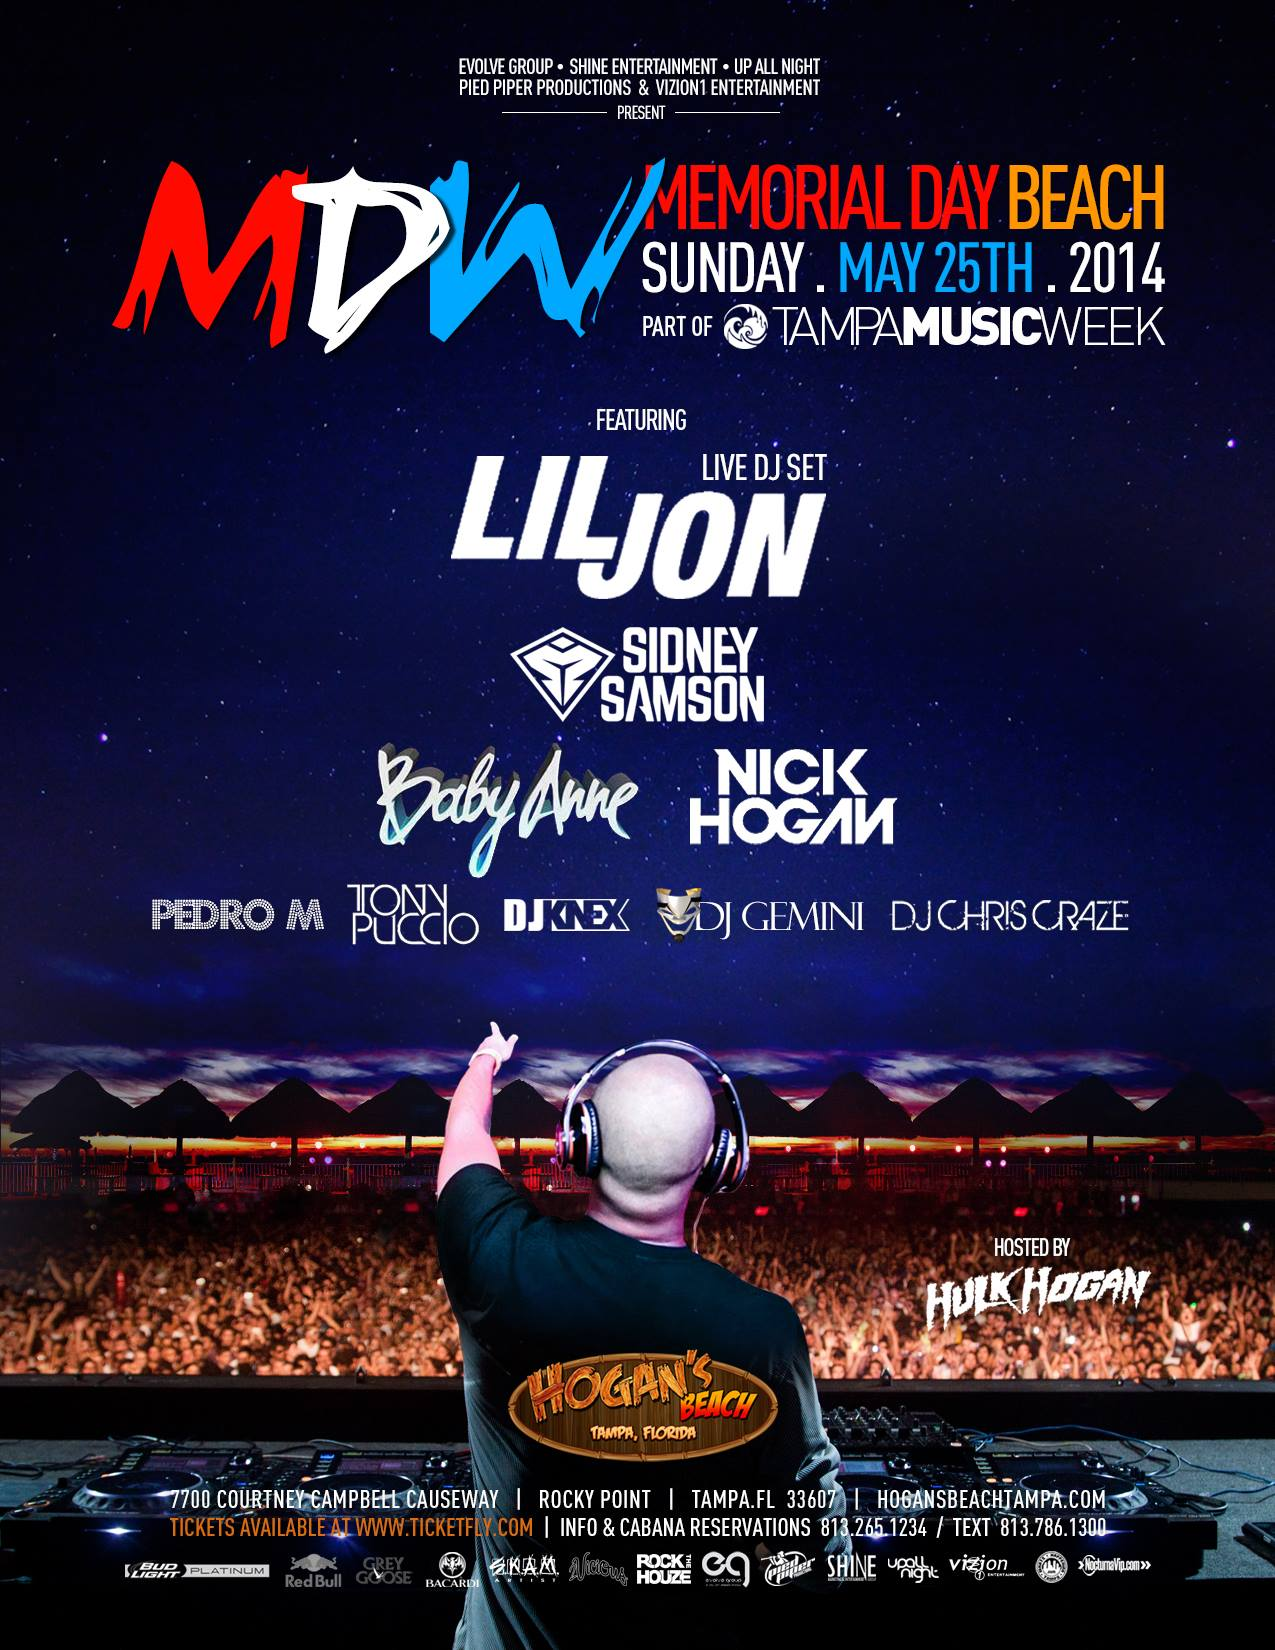 Sunday May 25th - MDW at Hogan's Beach w/ Sidney Samson and Lil Jon